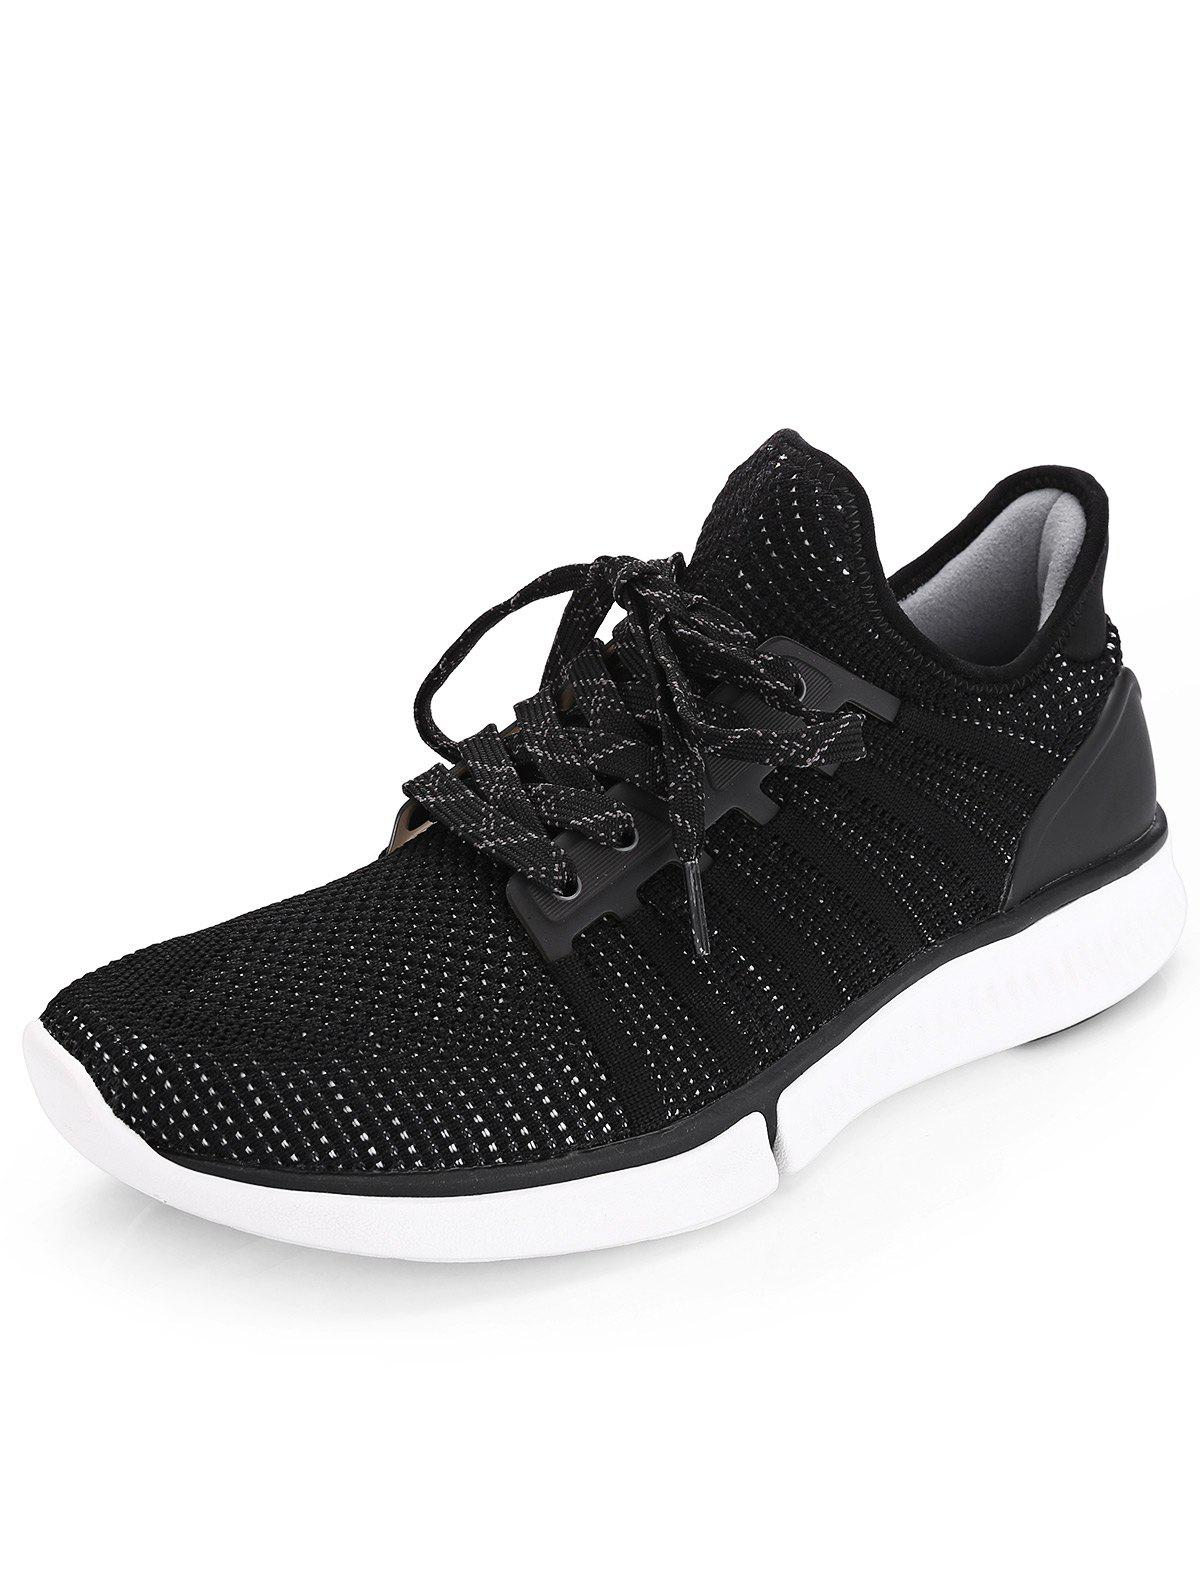 Store Xiaomi Men Smart Shoes Sneakers with Intelligent Chip